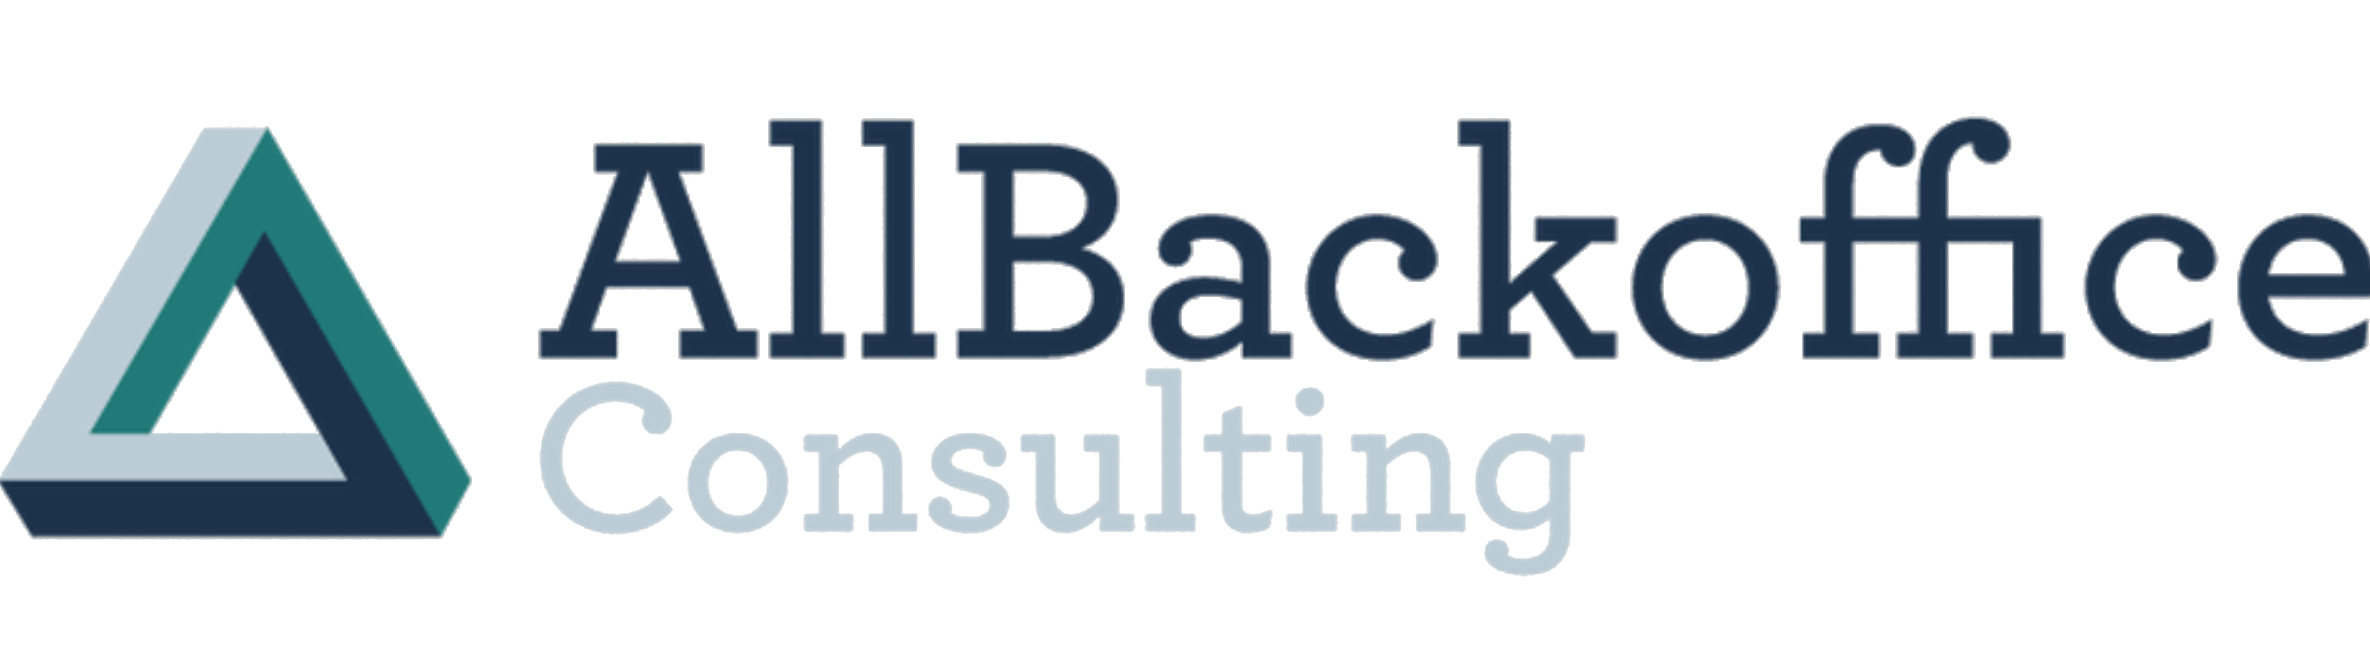 AllBackoffice Consulting